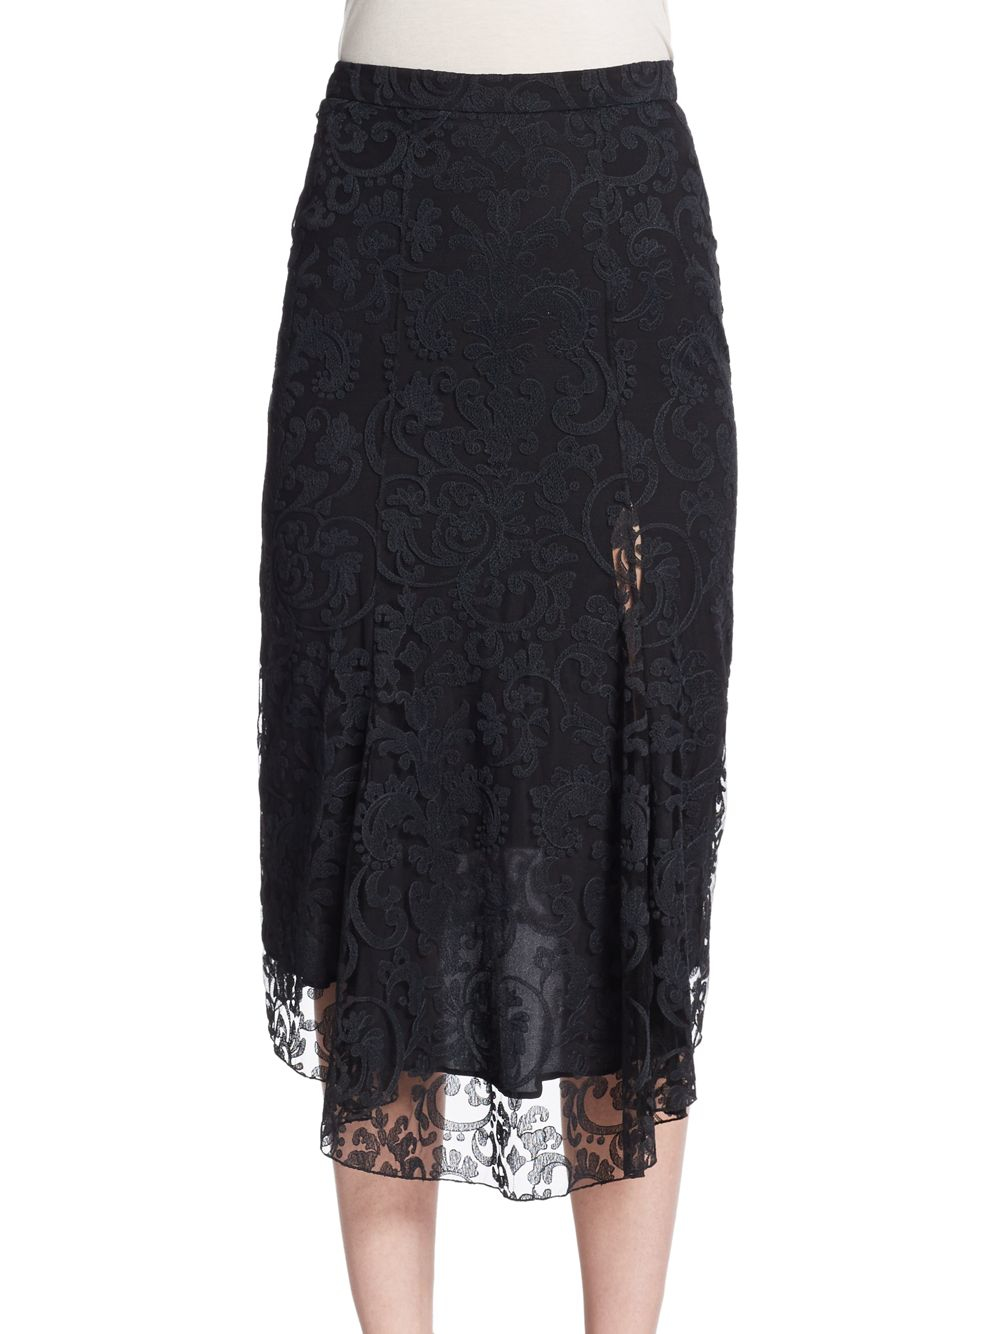 burberry prorsum lace embroidered midi skirt in black lyst